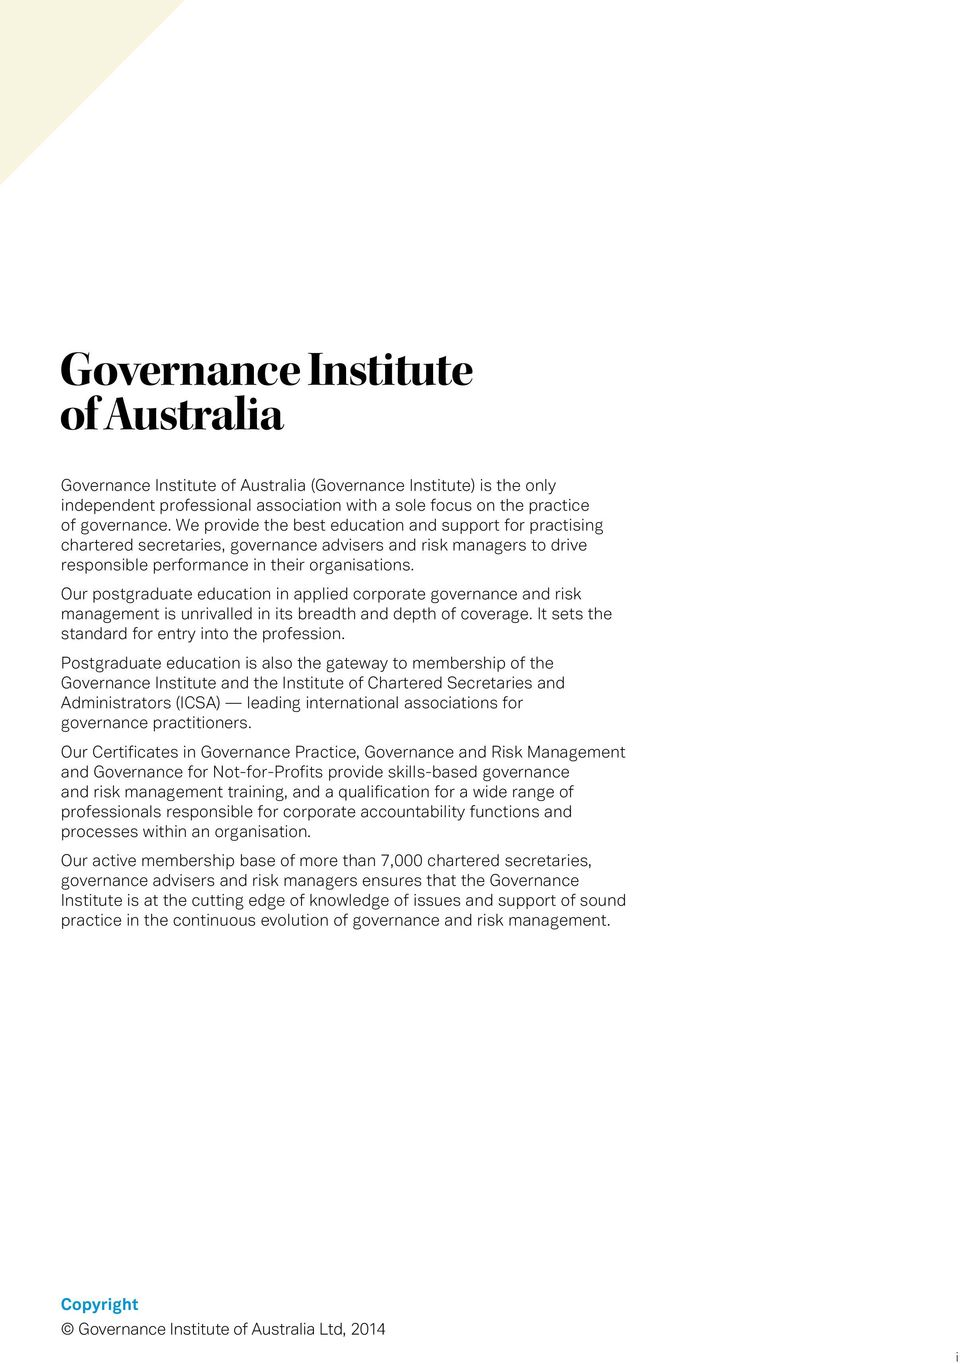 Our postgraduate education in applied corporate governance and risk management is unrivalled in its breadth and depth of coverage. It sets the standard for entry into the profession.